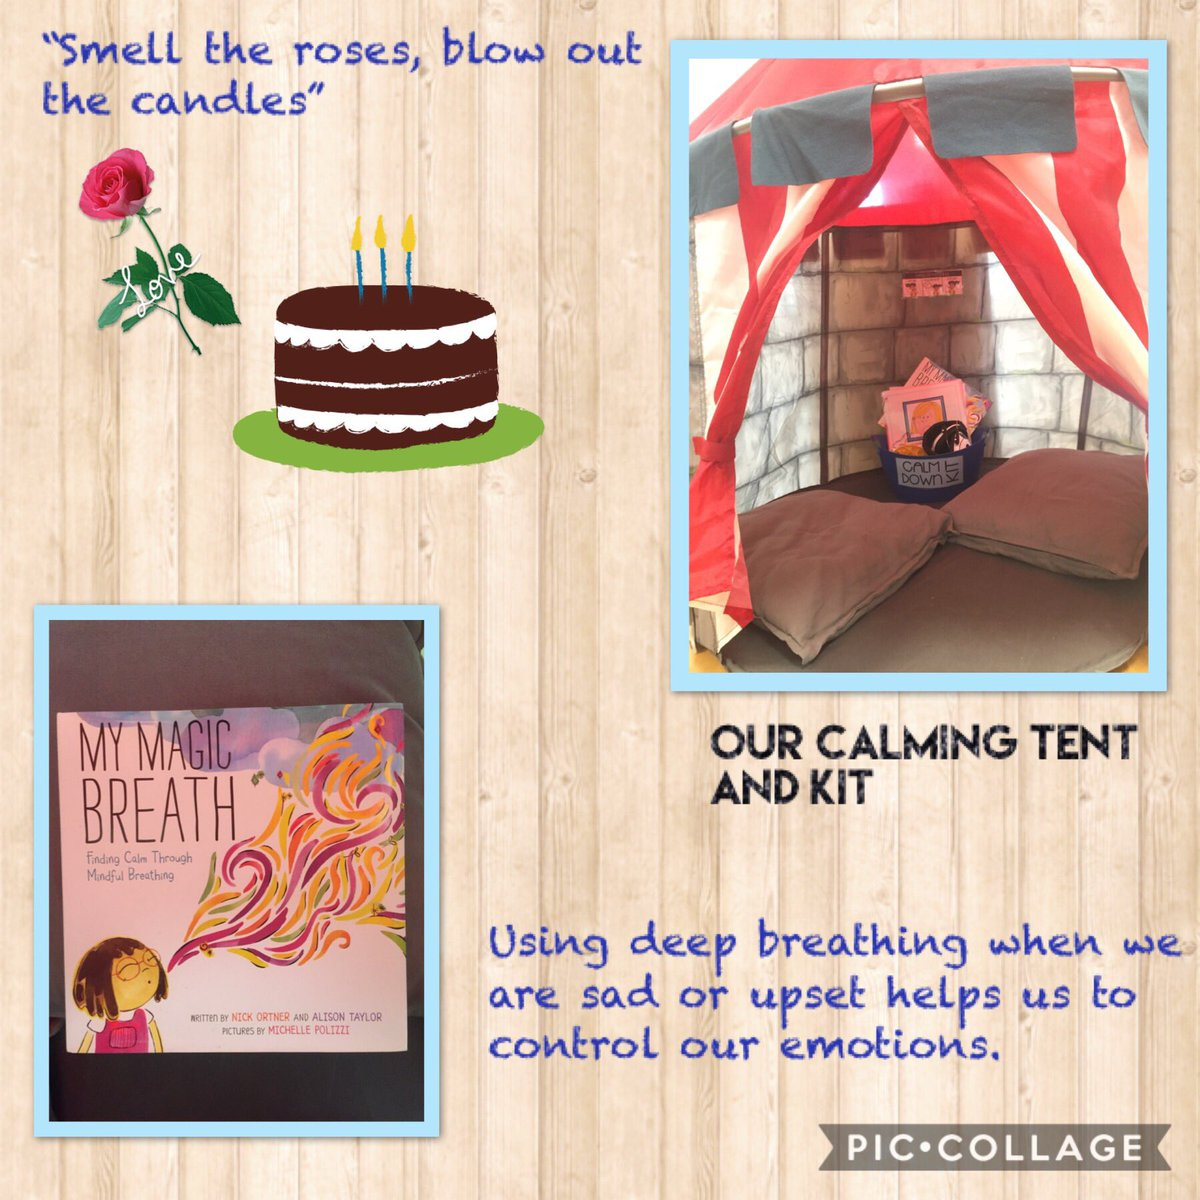 Check out our calming tent. It's a place we can go to when we need a minute alone. Perfect spot to practice mindful breathing to help calm our bodies and minds. #Mindfulness <br>http://pic.twitter.com/OIZGoIDnso